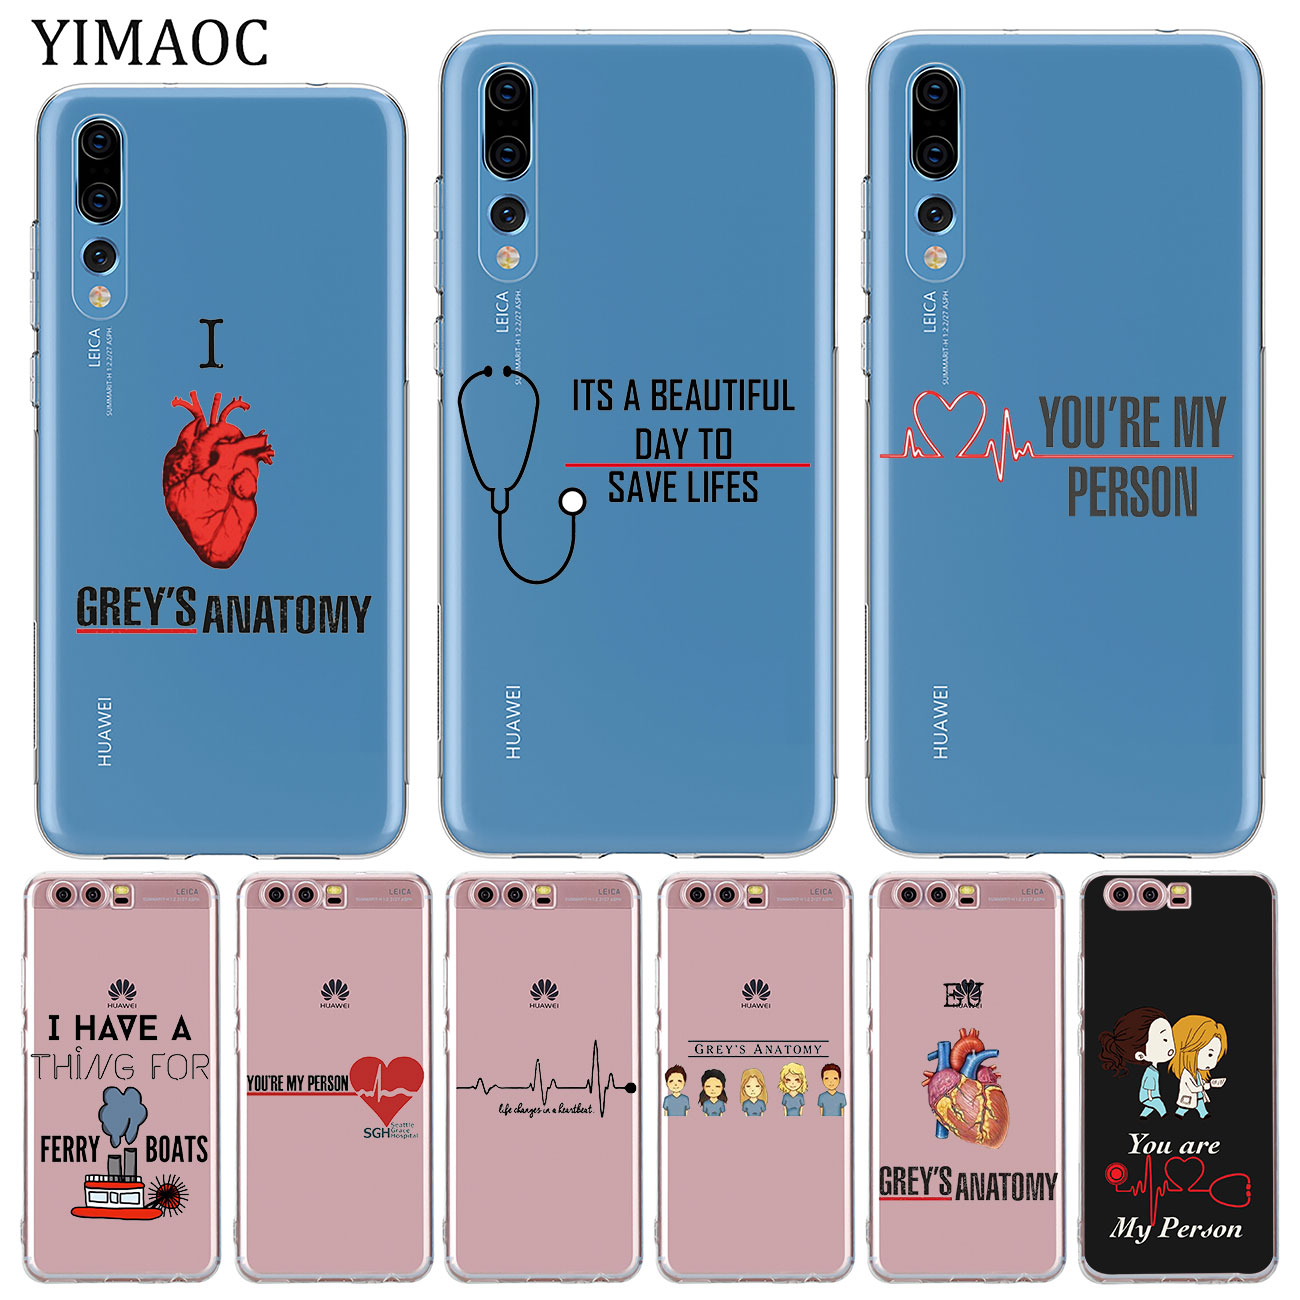 YIMAOC Grey's Grey is Anatomy TV Soft Silicone Phone Case for Huawei P30 P20 Pro P10 P8 P9 Lite 2017 2016 2015 P smart Z 2019 image